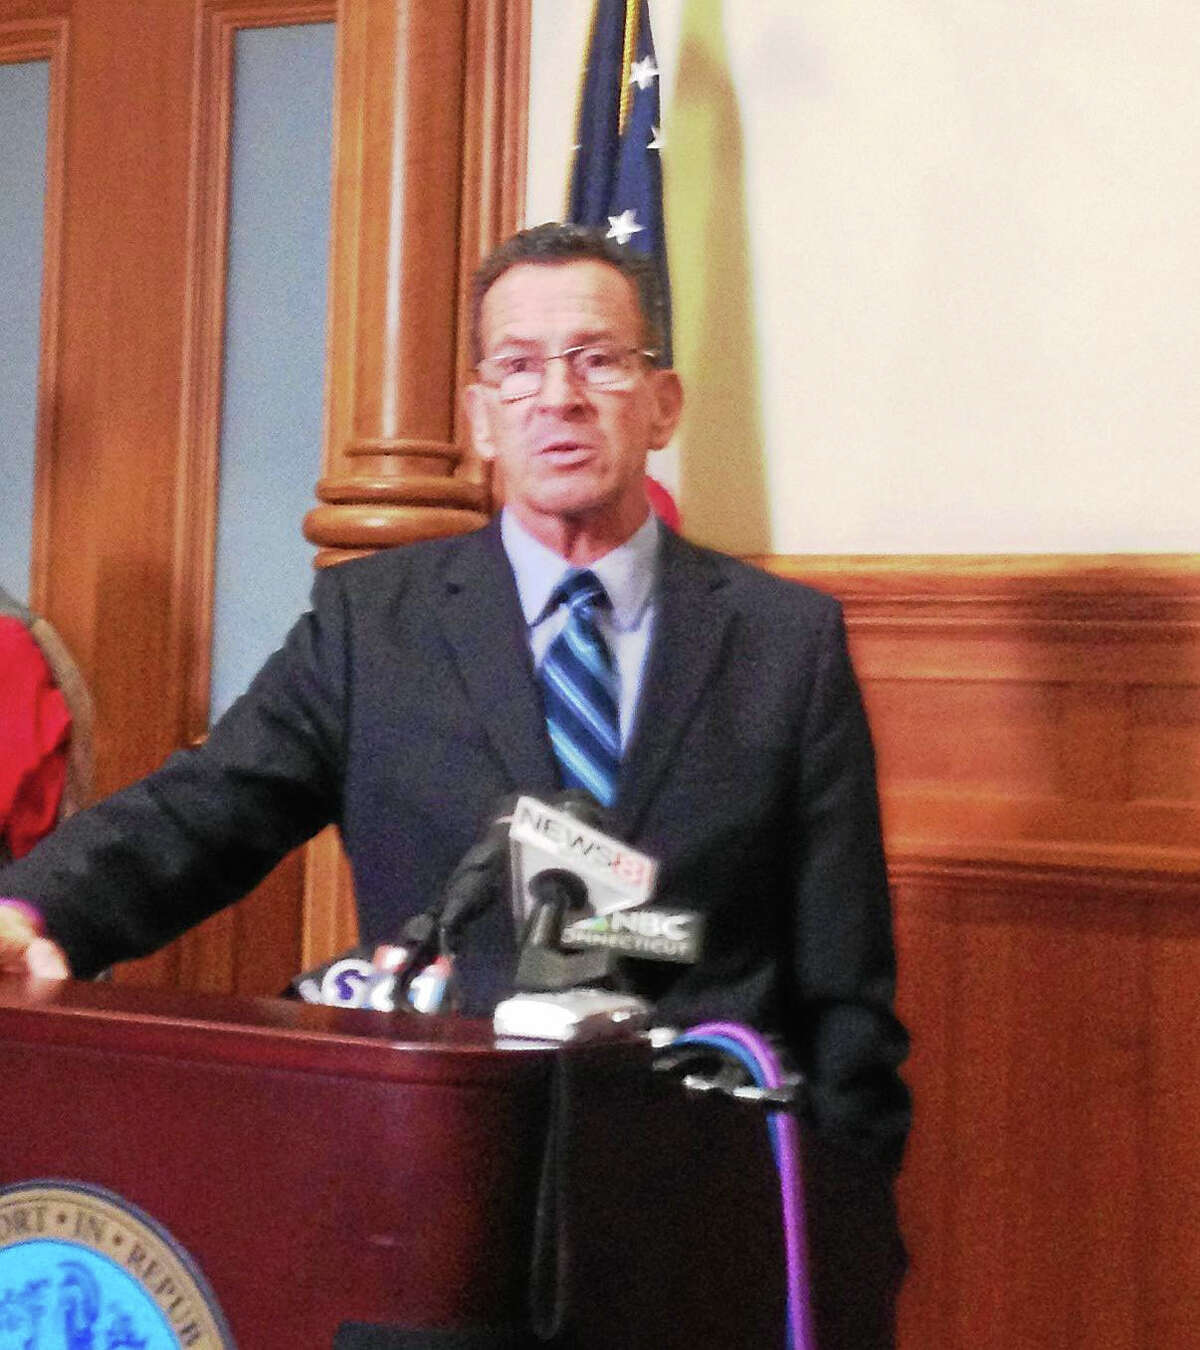 Gov. Dannel P. Malloy, speaking in New Haven, said the U.S. has a moral obligation to take in Syrian families.